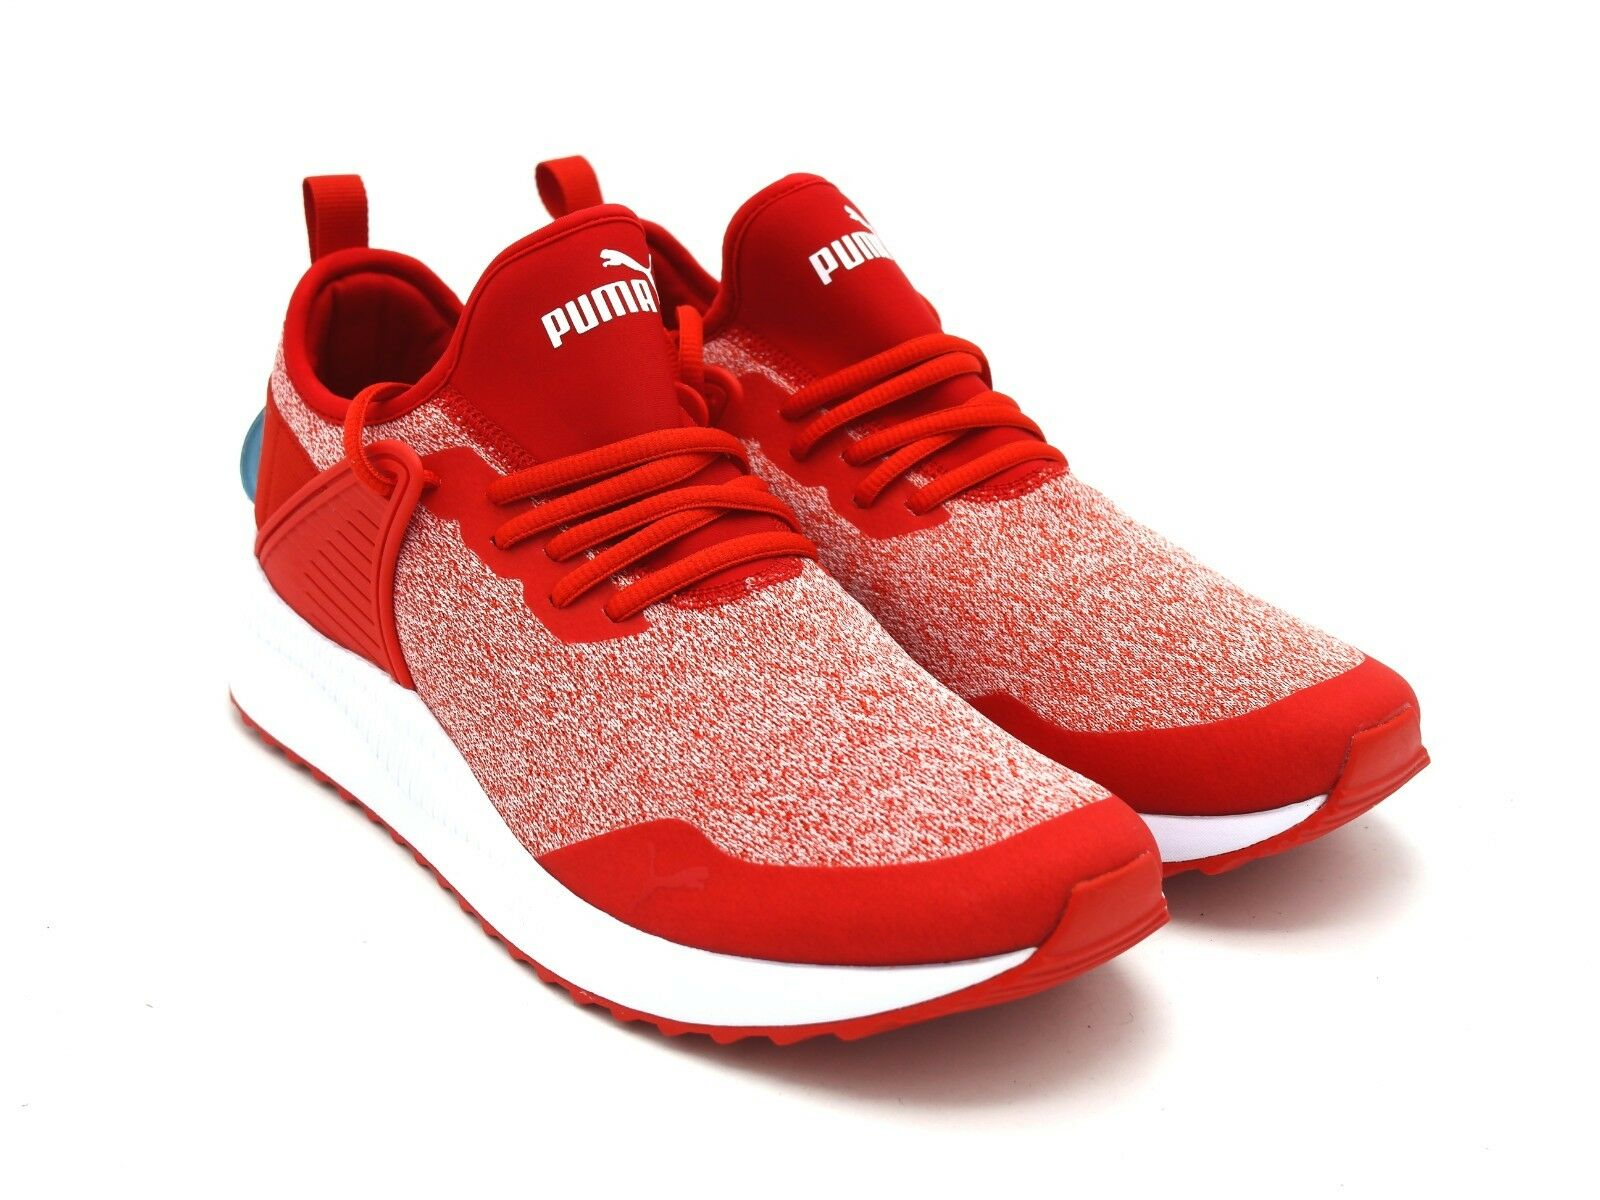 D2215 New Men's Puma Pacer Next Cage MultiKnit Red Athletic shoes 10 M